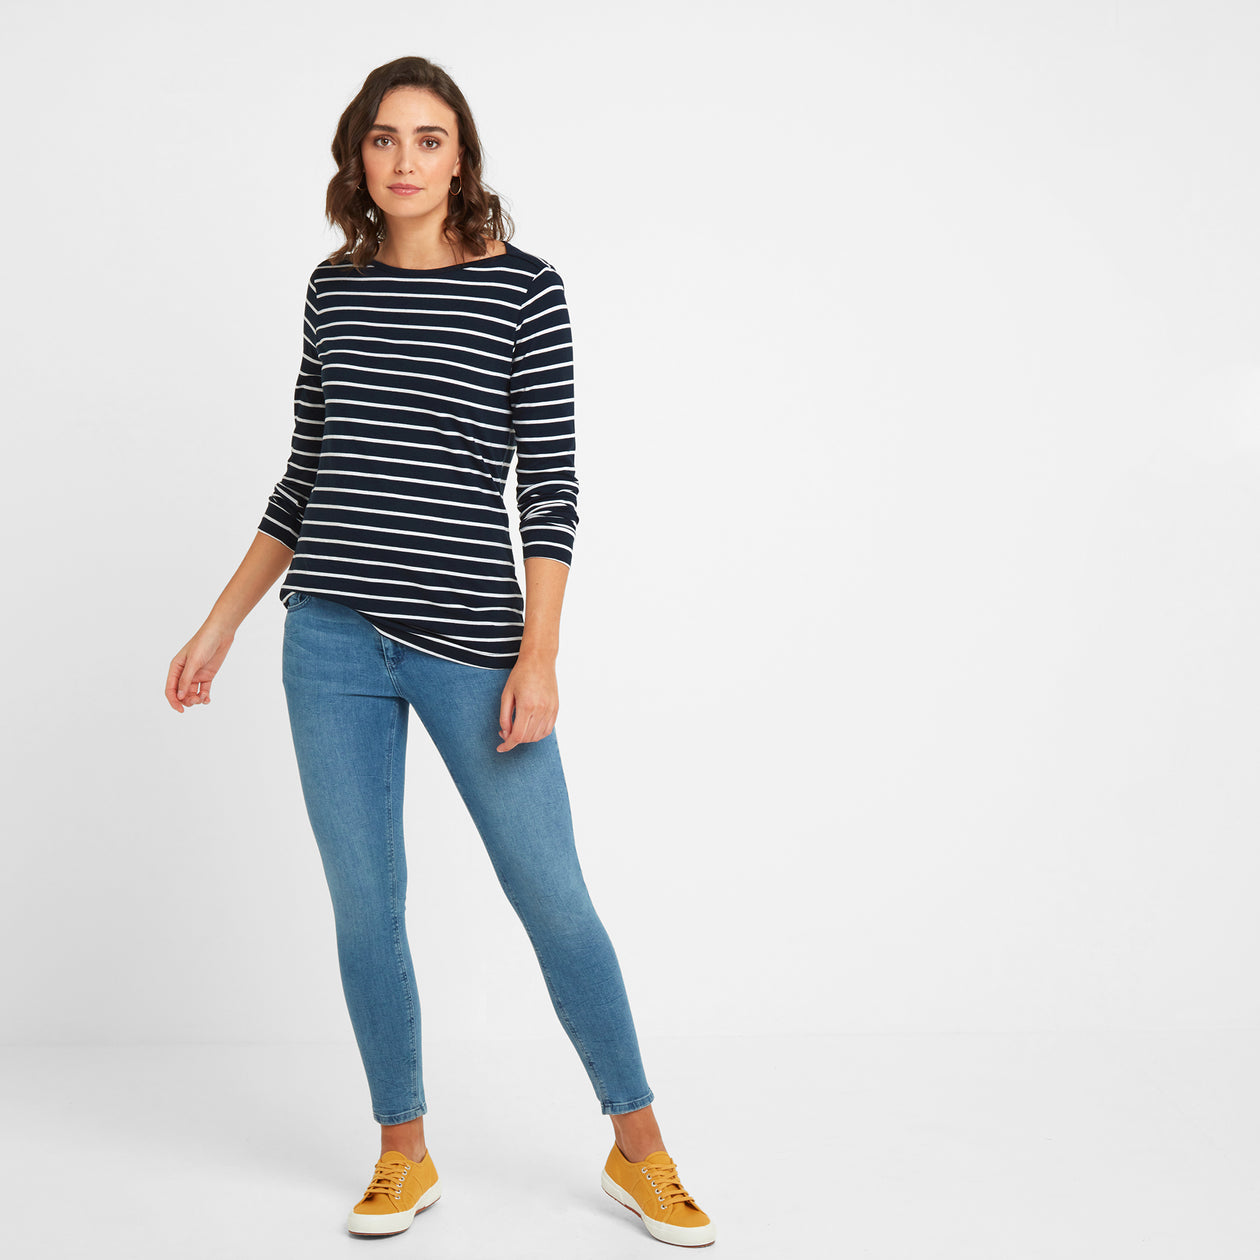 Hessle Womens Long Sleeve Stripe T-Shirt - Dark Indigo image 4